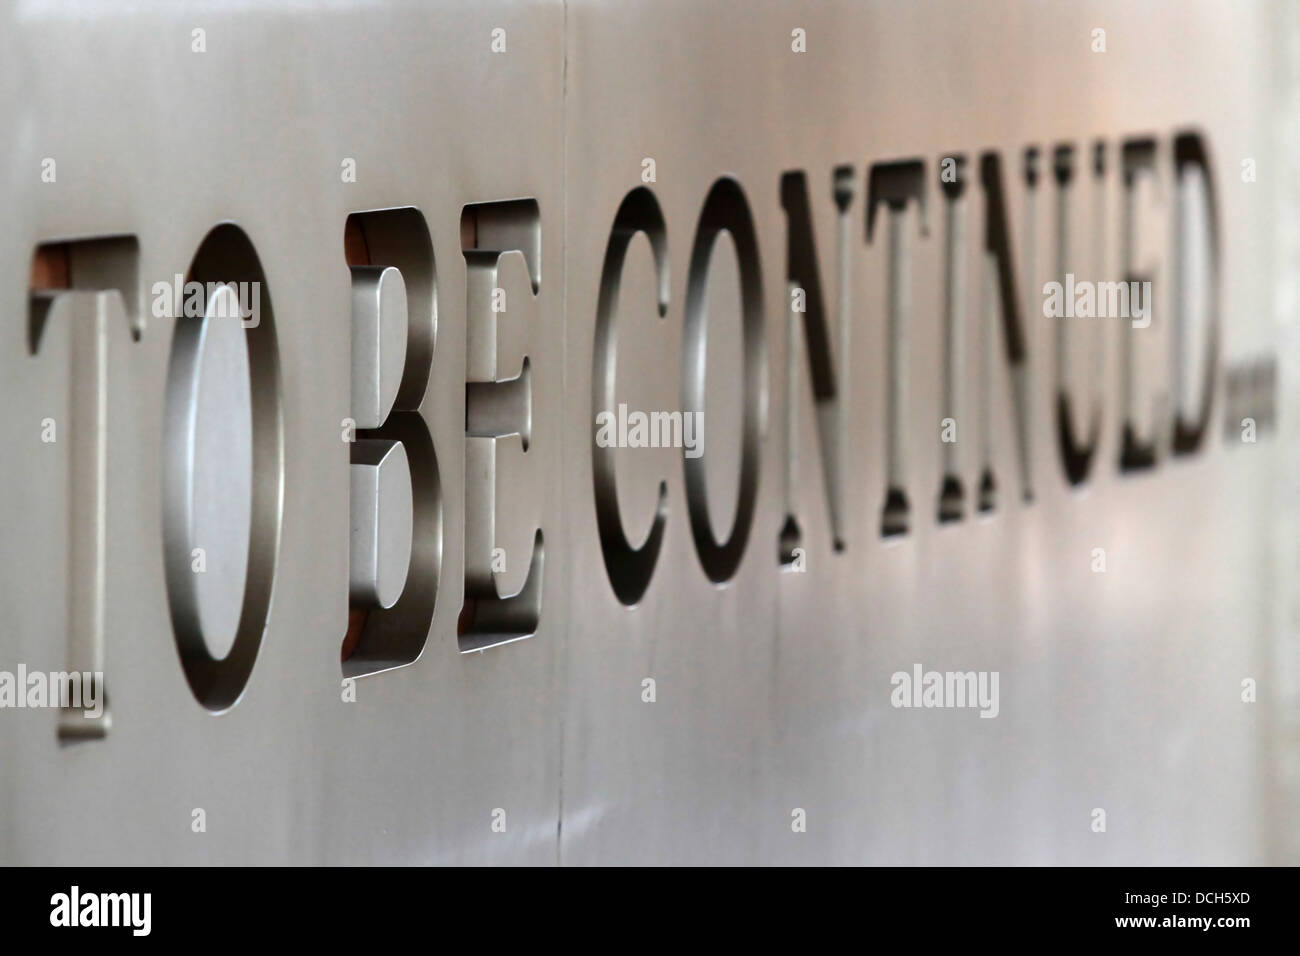 To Be Continued text debossed in marble - Stock Image